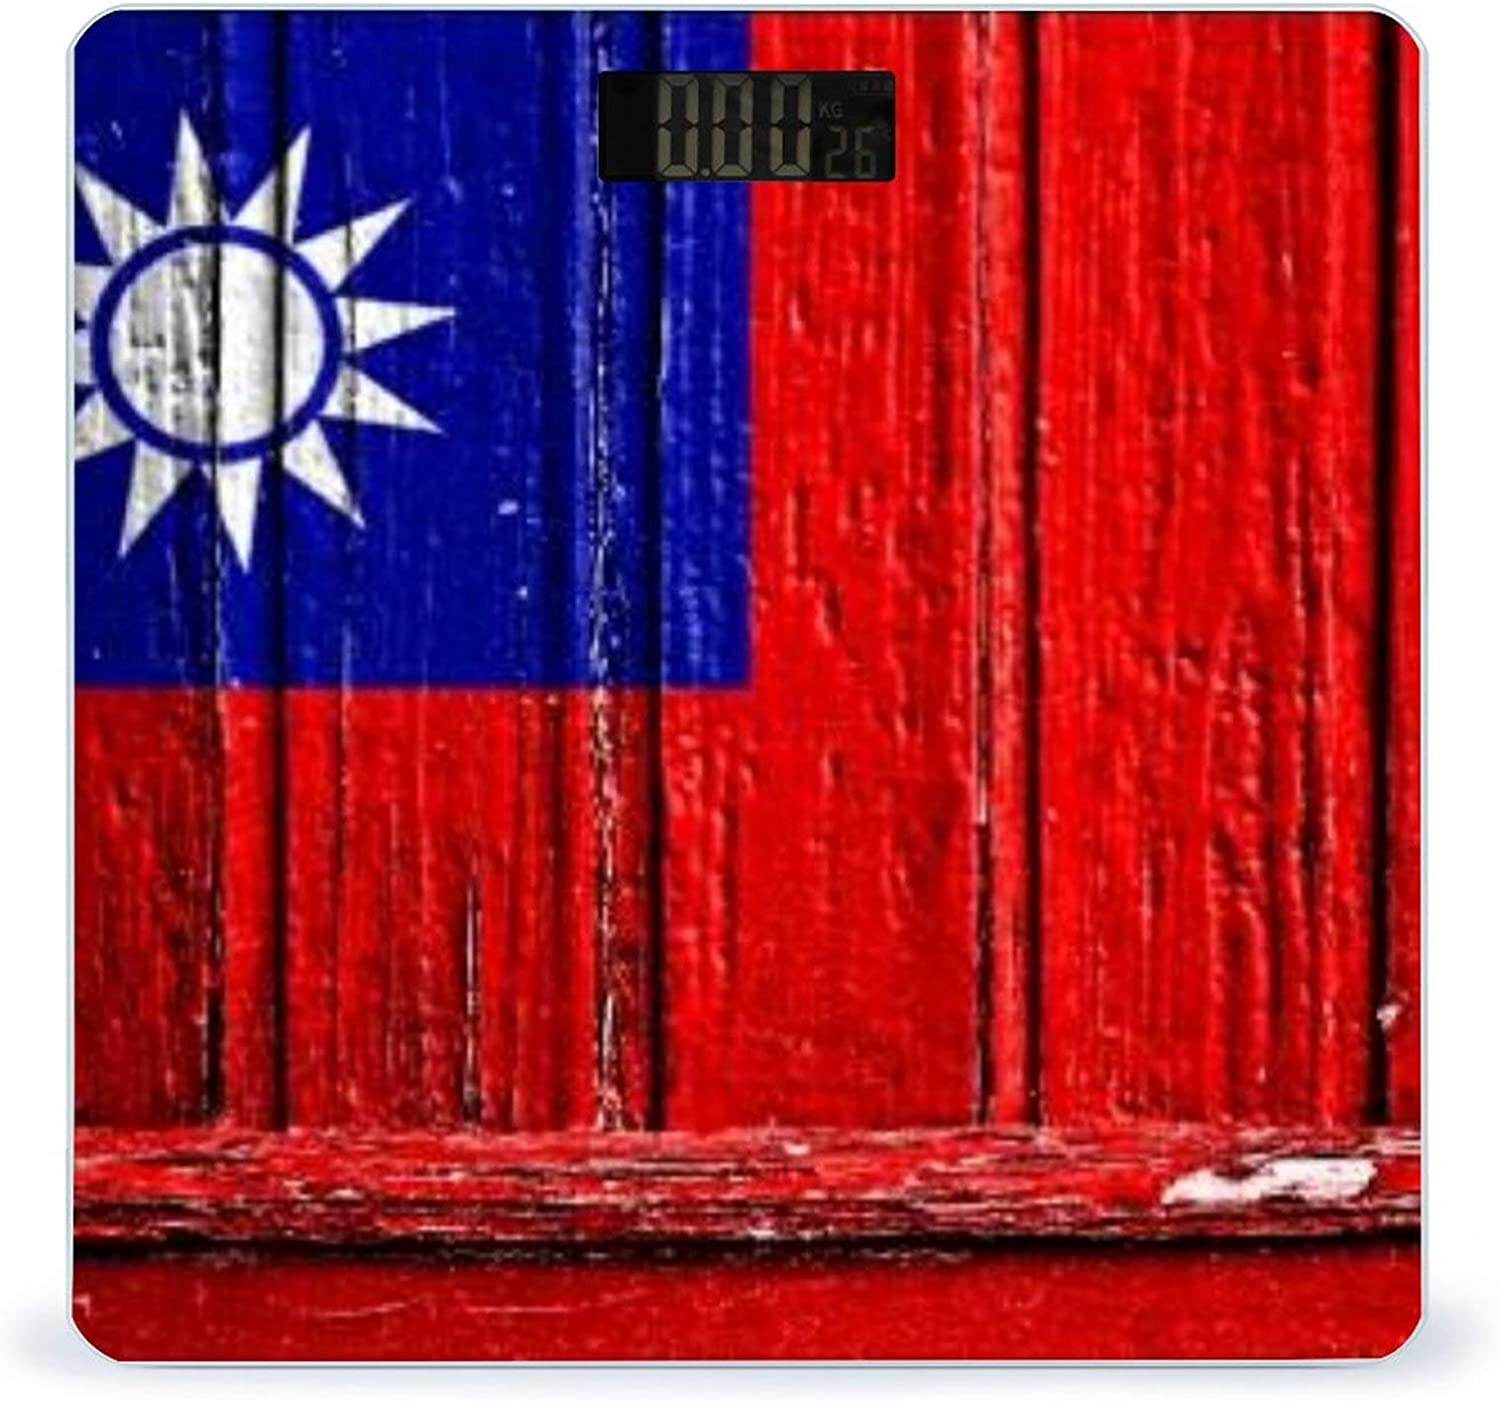 CHUFZSD Max 73% OFF Flag of Taiwan Painted On Accurate Highly Discount is also underway Wooden Frame S